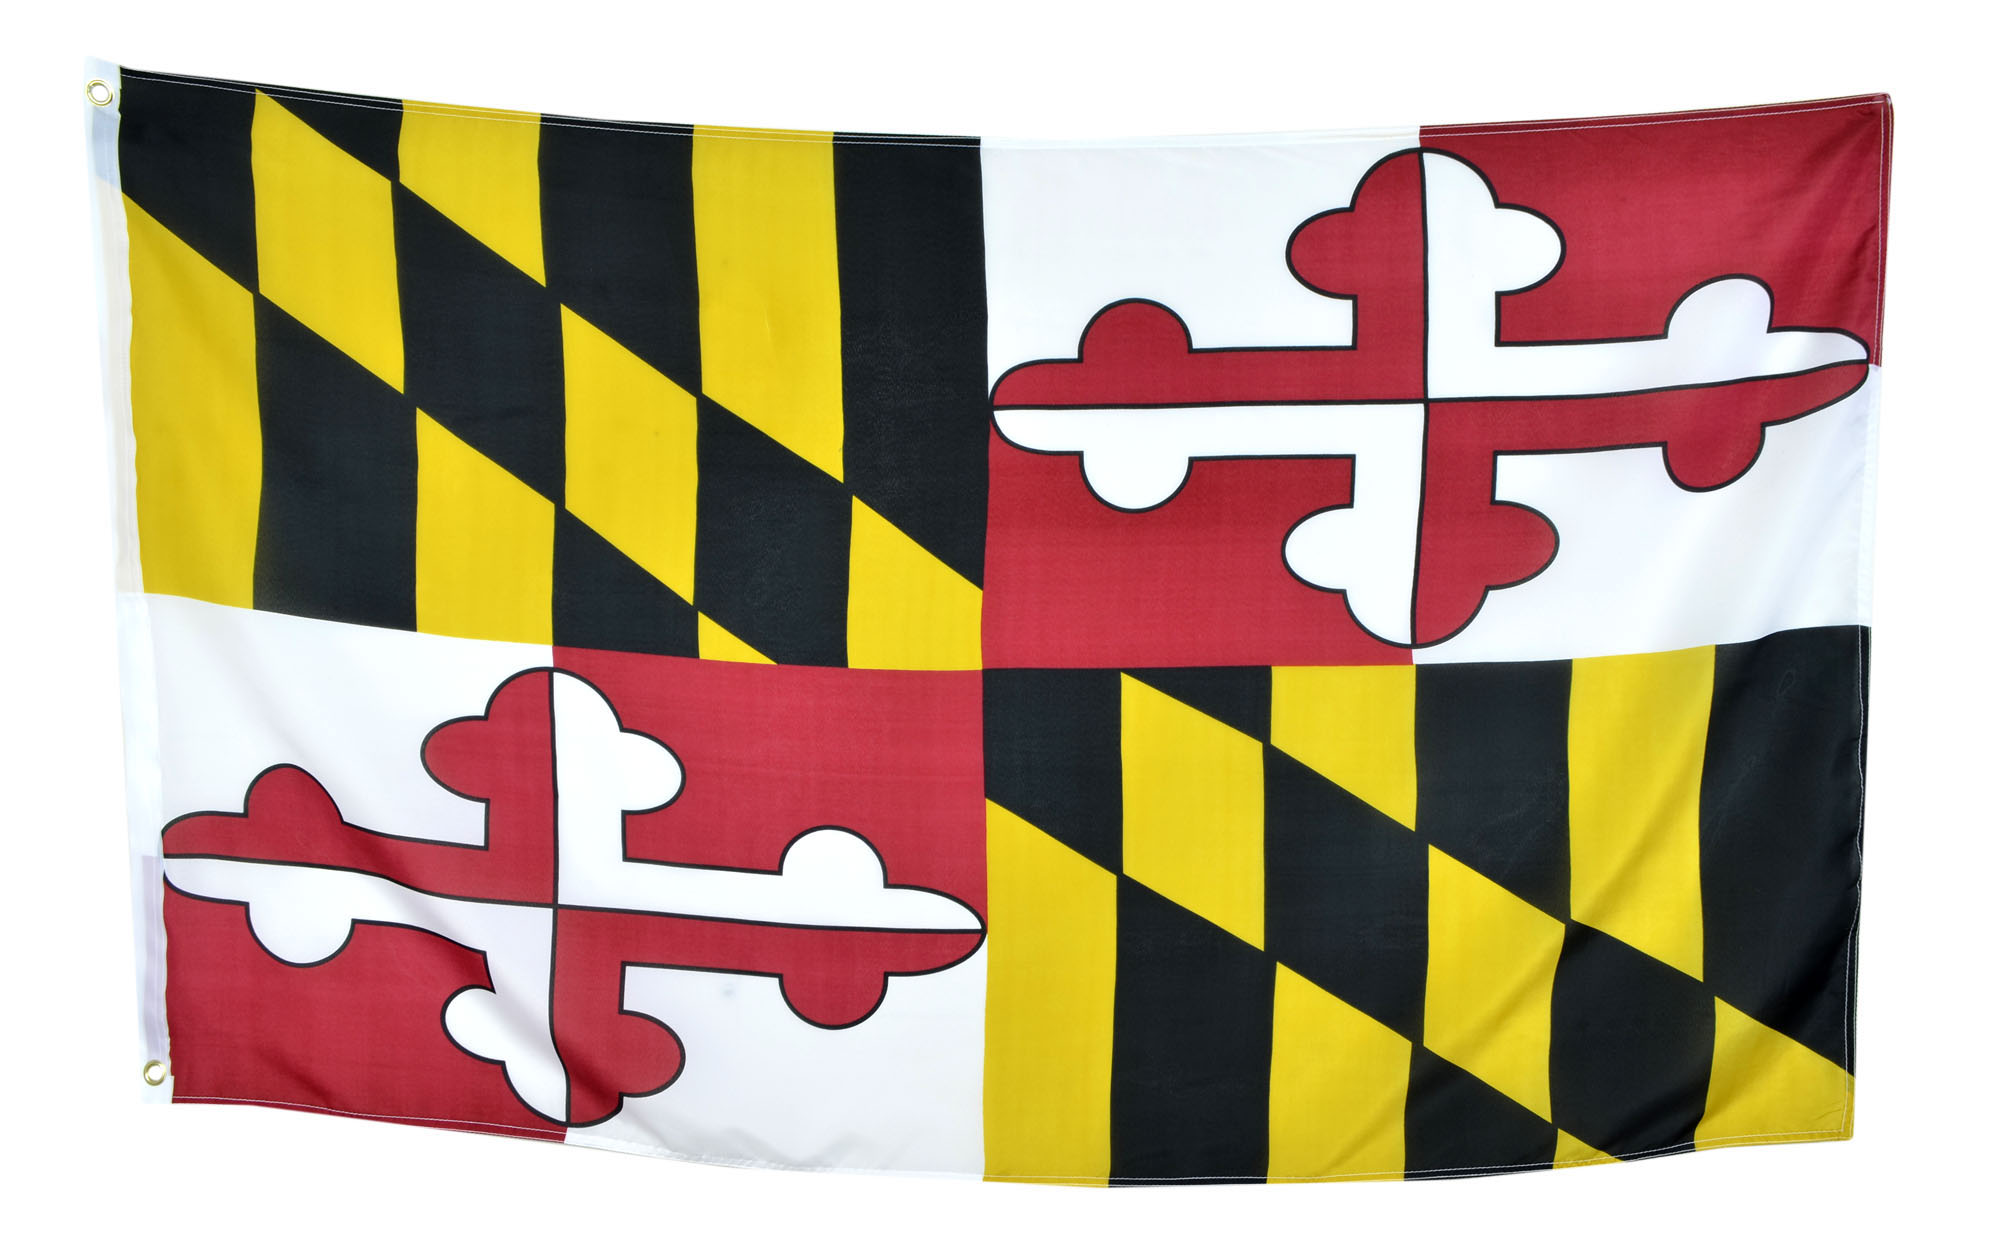 Shop72 Maryland State Flags 3x5' Sturdy Polyester Brass Grommets Double Stitched